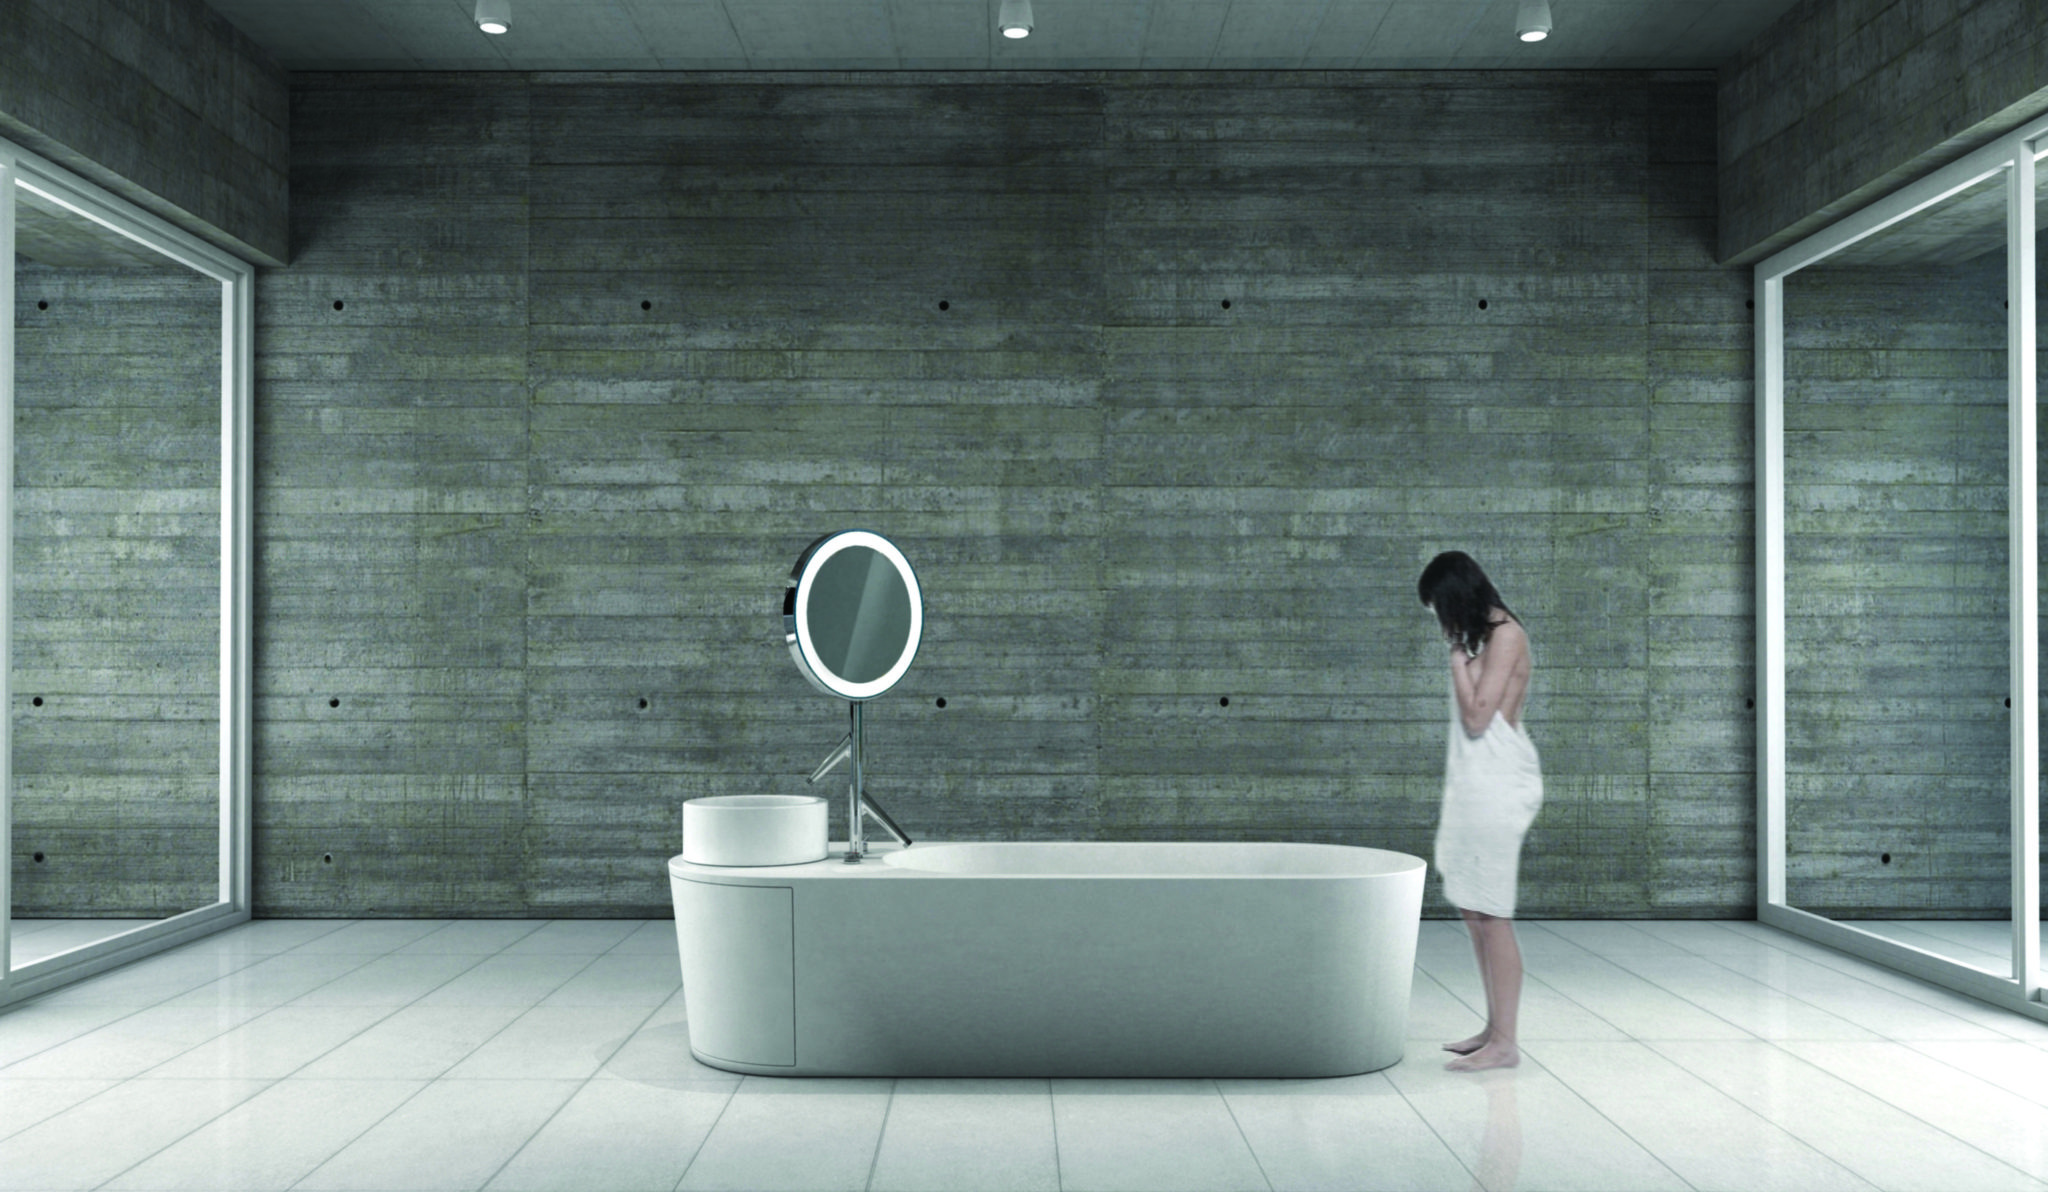 ShanShan Wang ... & Futurespace\u0027s Gavin Harris wins Reece Bathroom Innovation Award 2012 ...